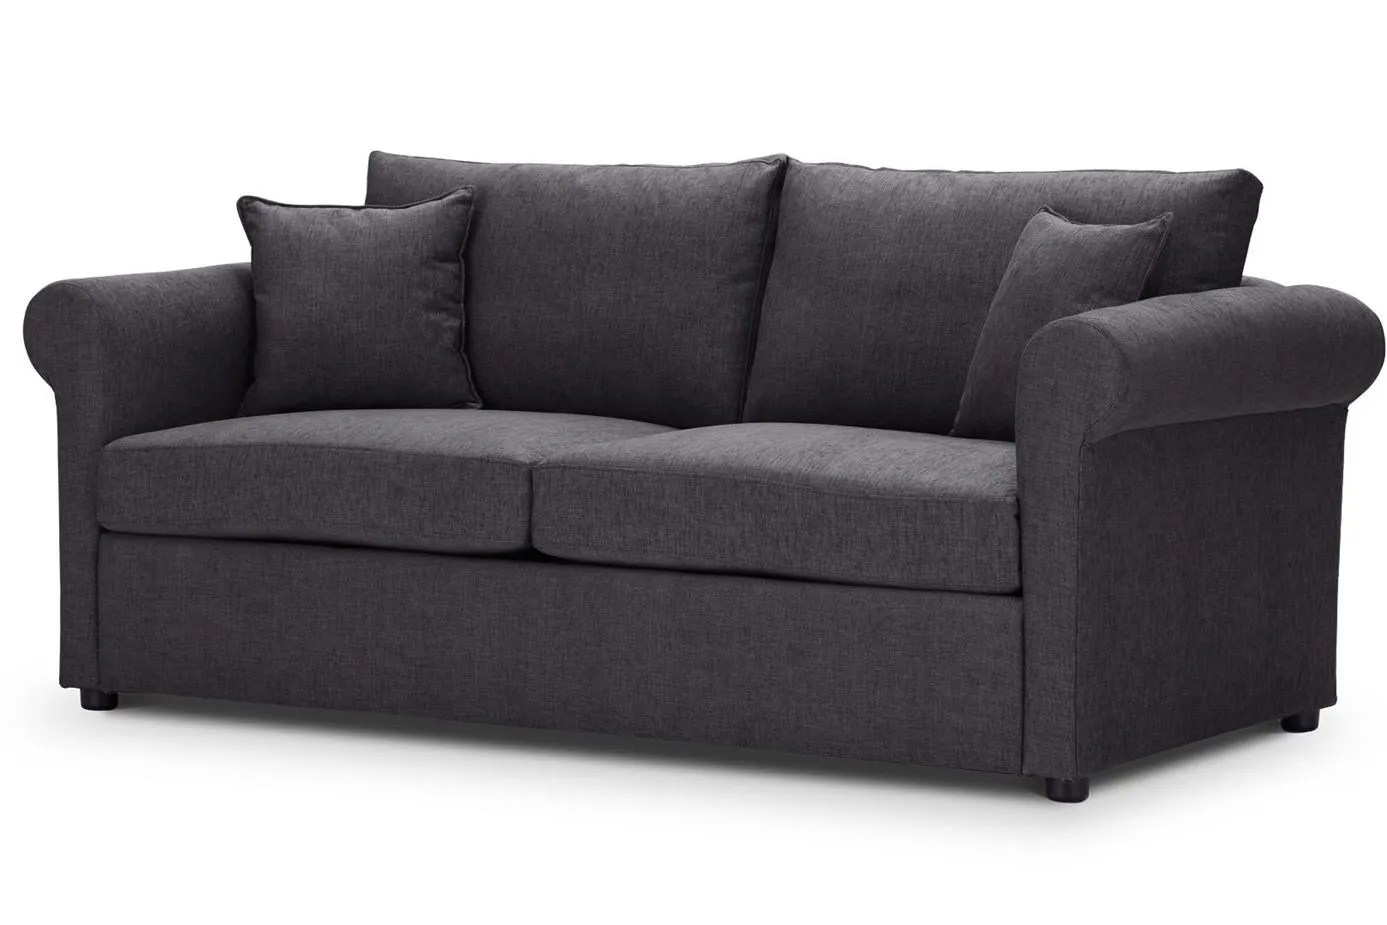 best built sofa beds blue arm covers special offer rounded arms charcoal